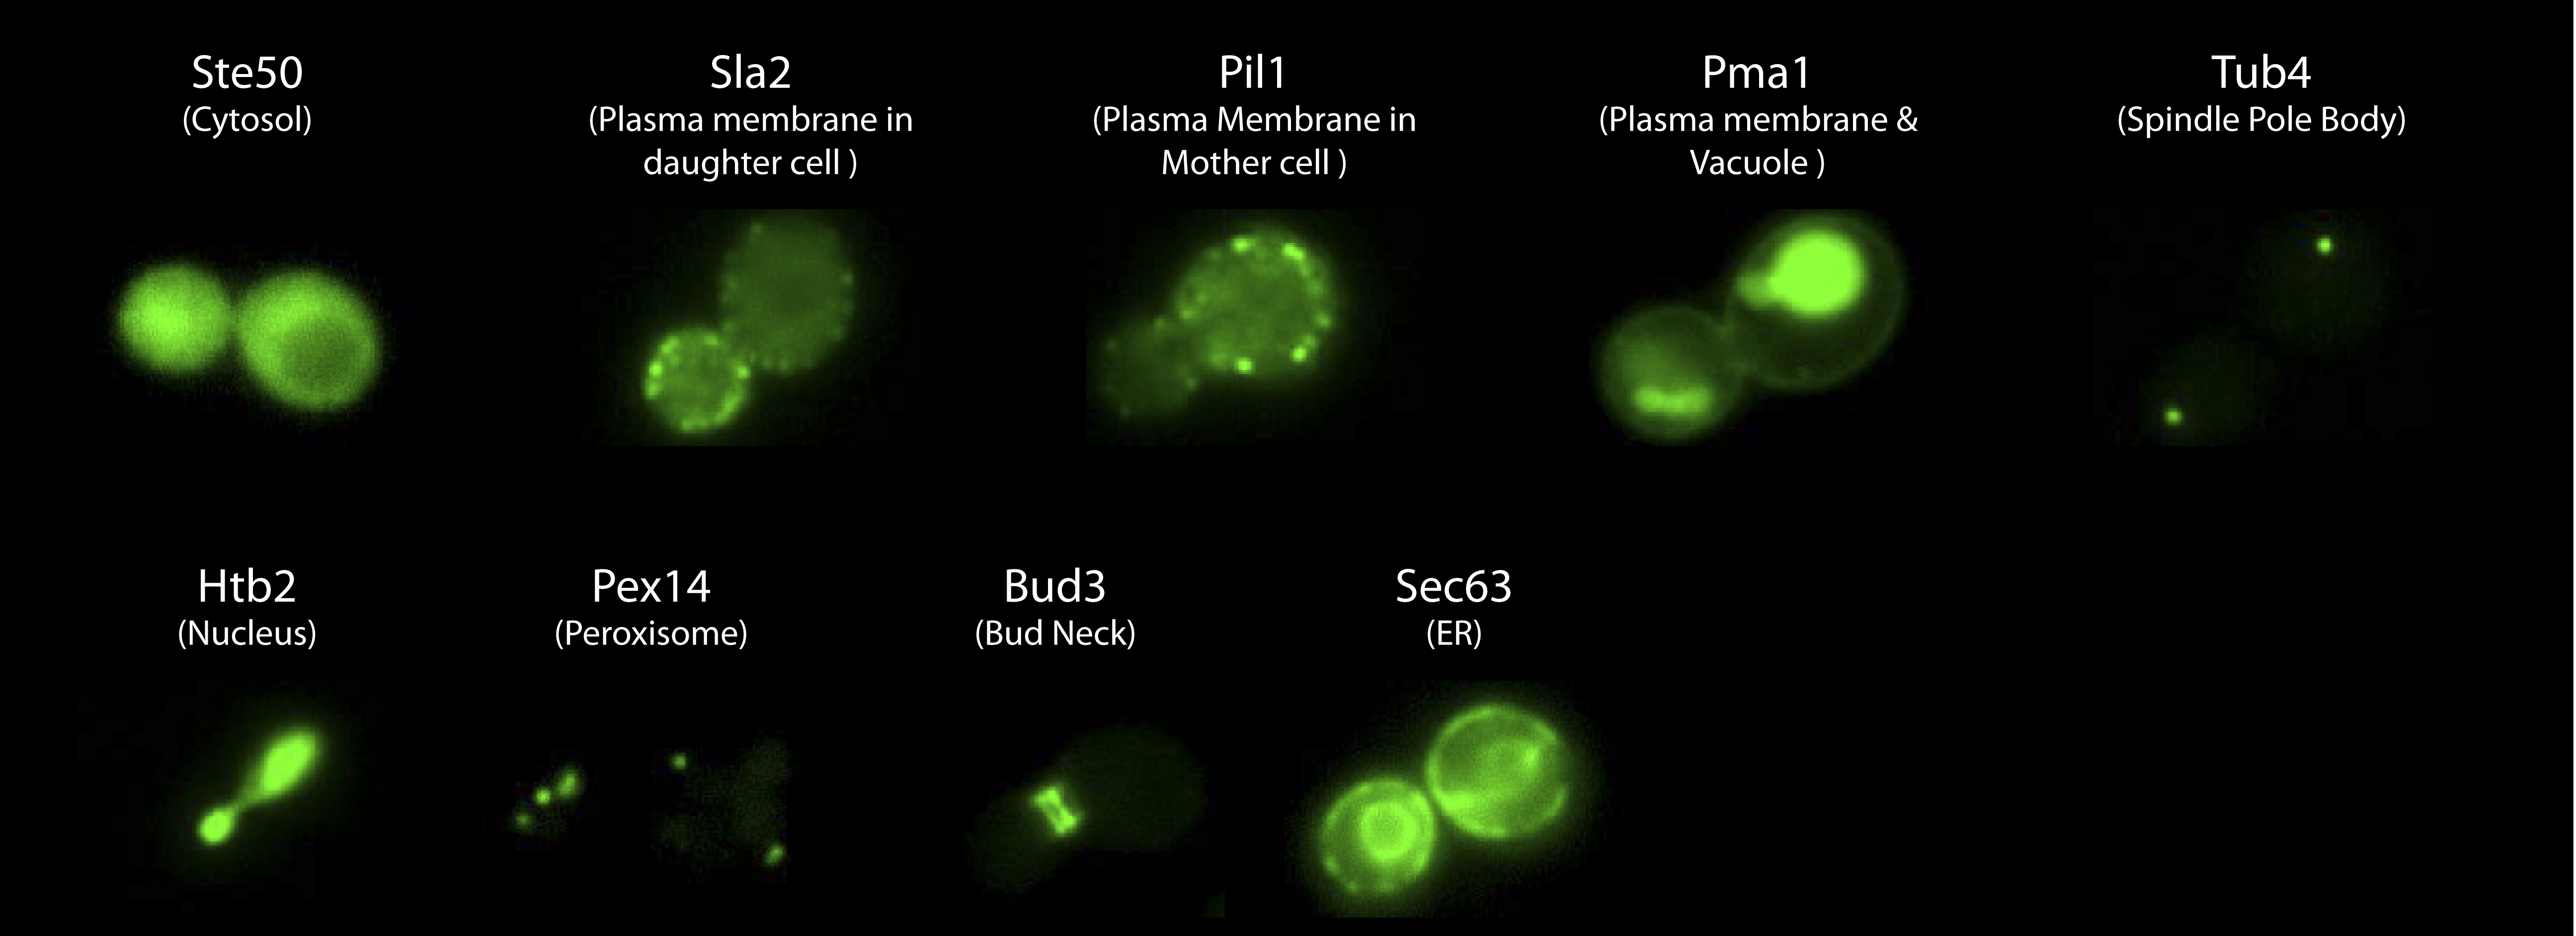 Imaging of proteins with different localizations